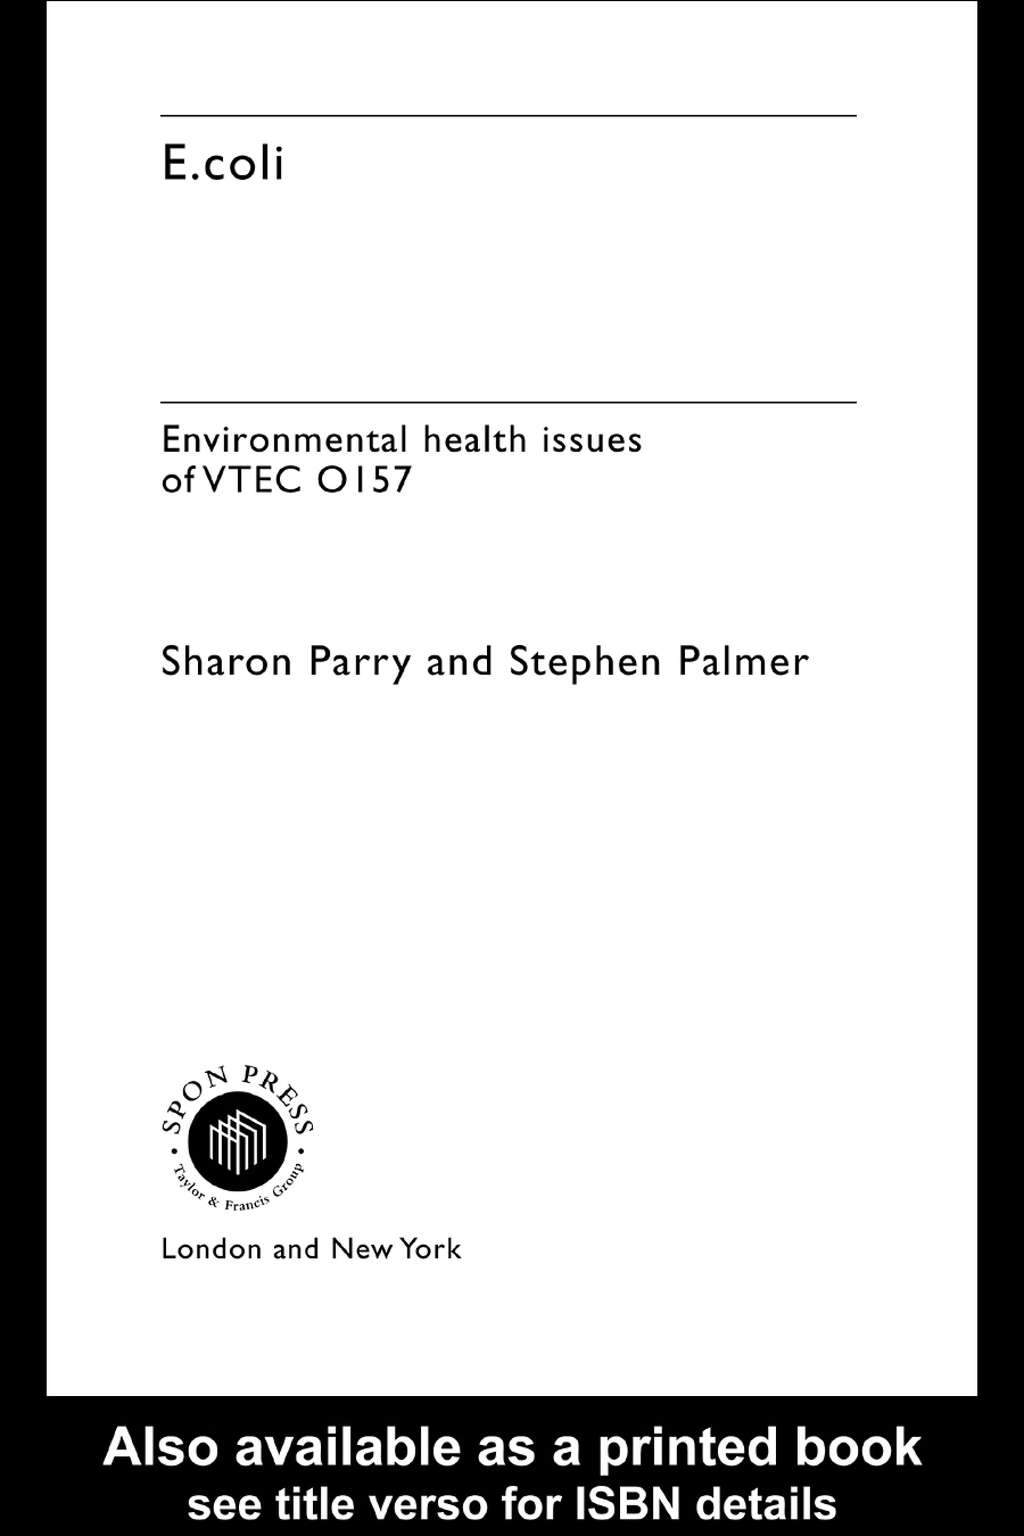 E.coli Environmental Health Issues of VTEC 0157